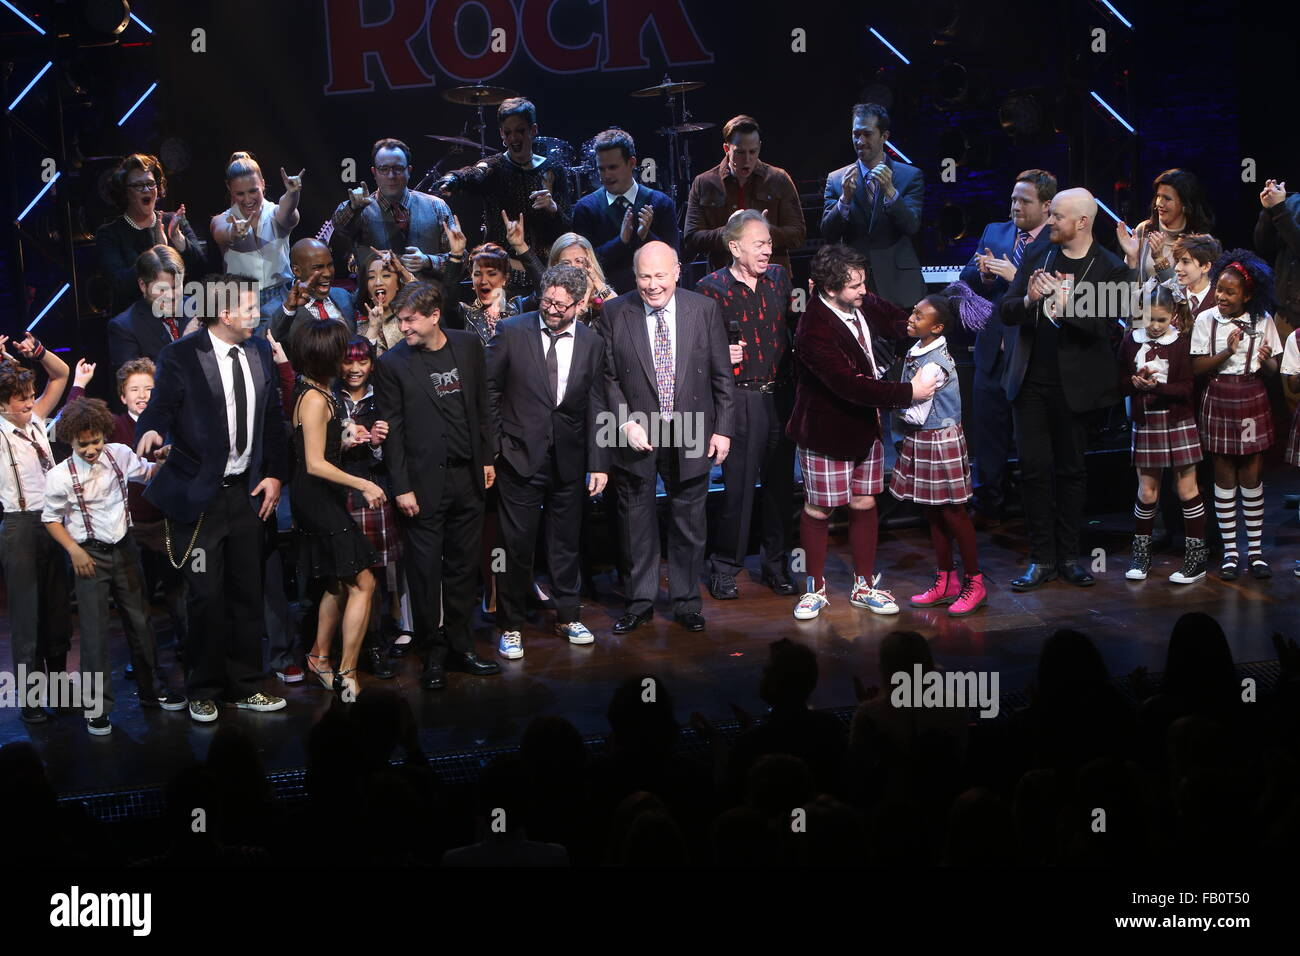 opening night for broadway musical of rock at the winter